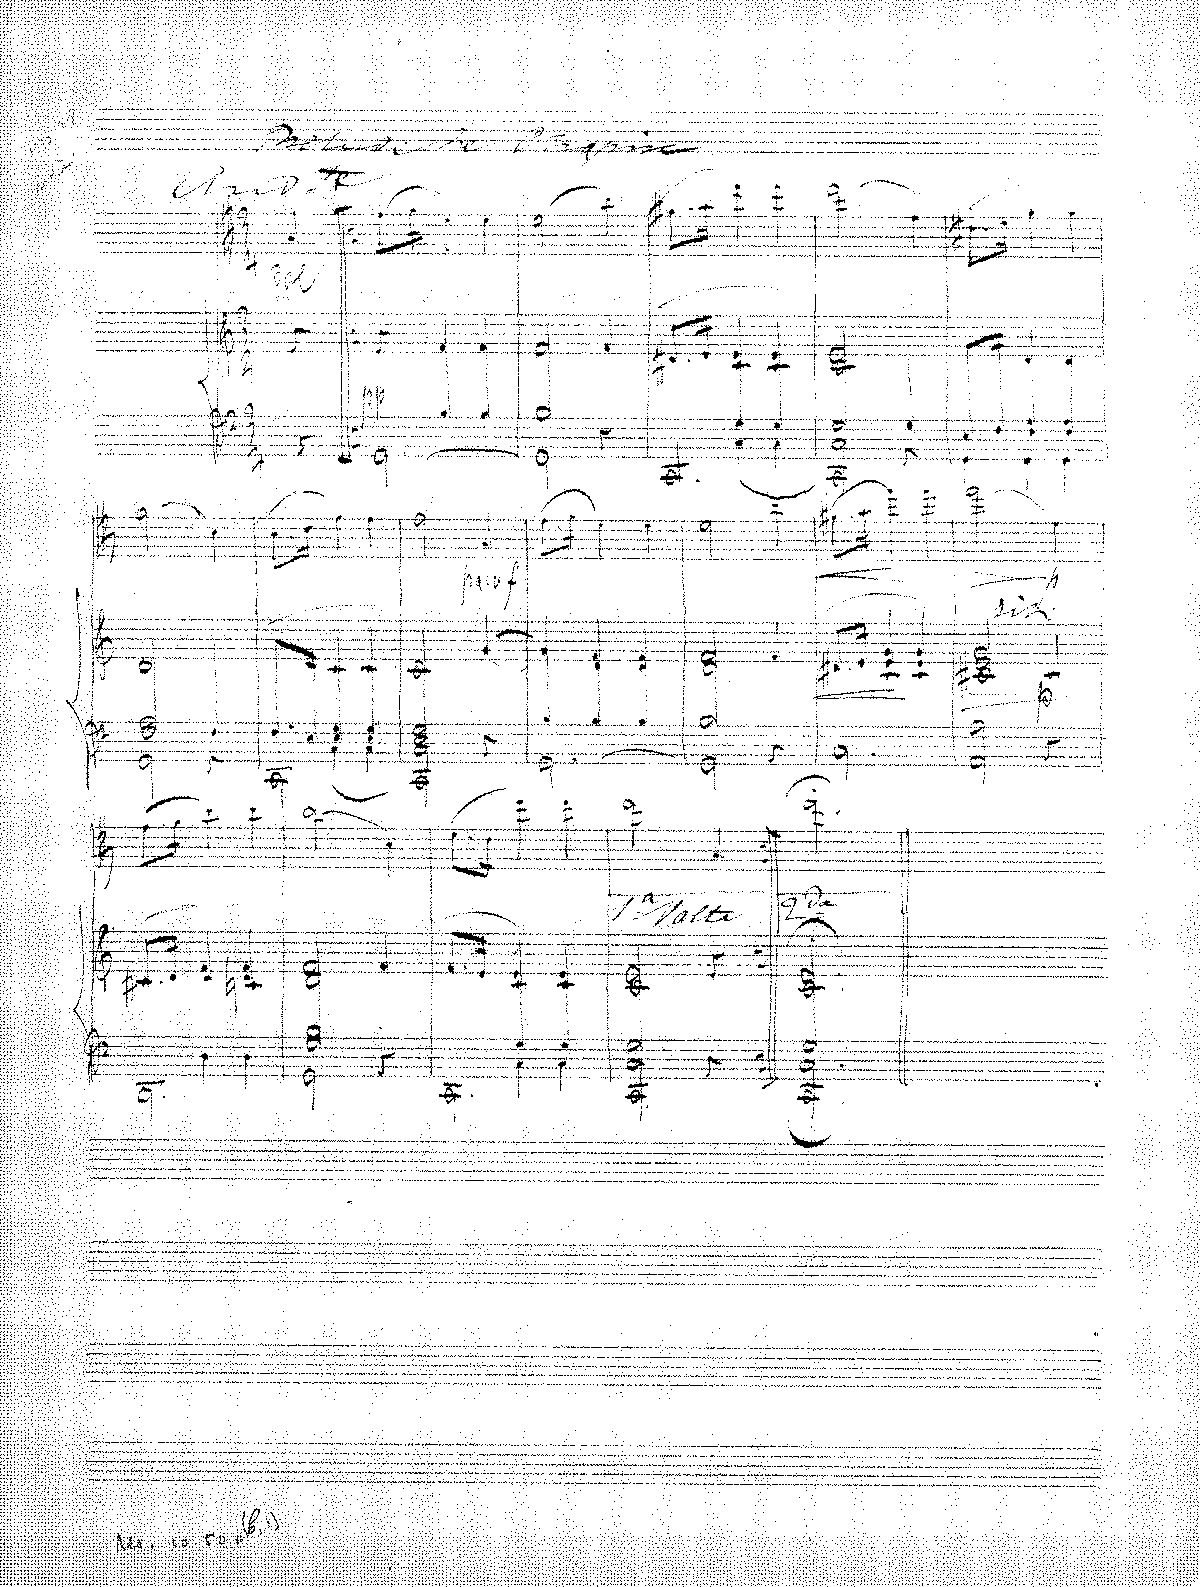 PMLP02344-Chopin - Prelude Op28 No2 (Franchomme) for cello and piano manuscript.pdf